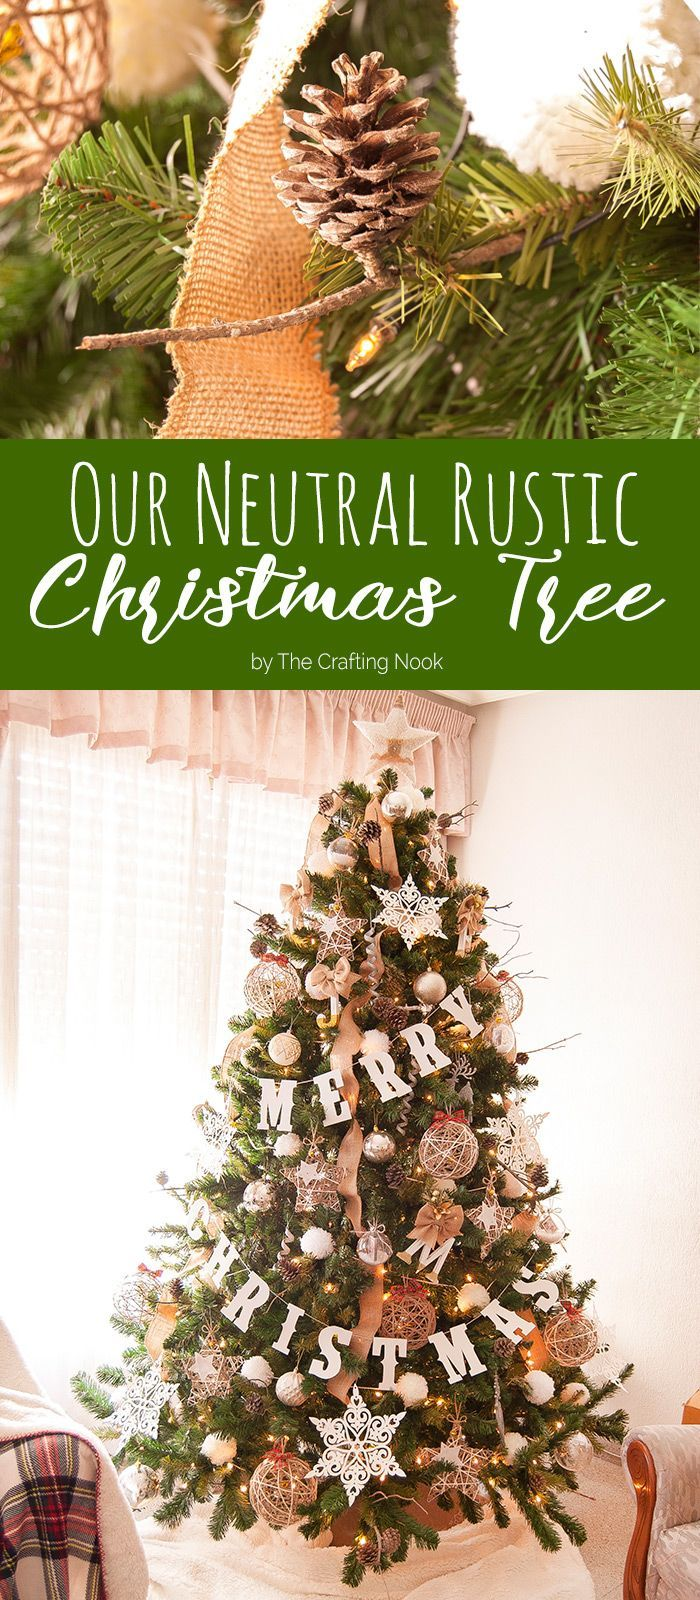 Our Neutral Rustic Christmas Tree is mostly handmade on it's decoration. Easy and inexpensive way to make your Christmas tree burst in glam and style! Get some inspiration!